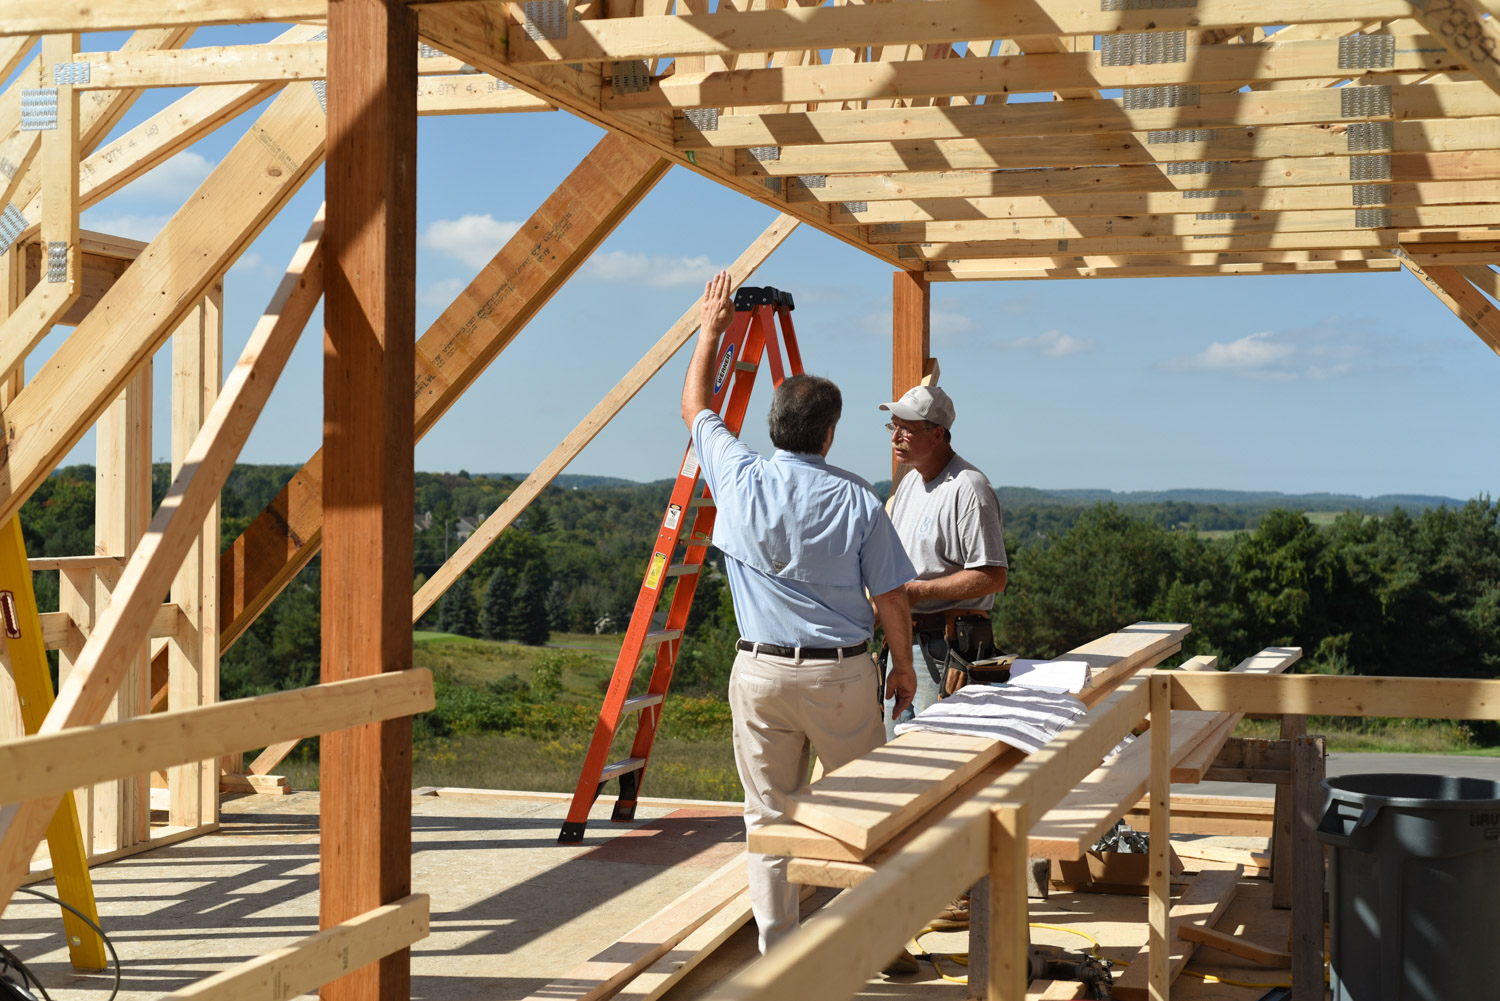 Begin your construction project management career or job at Birchwood Construction in Harbor Springs, Northern Michigan.